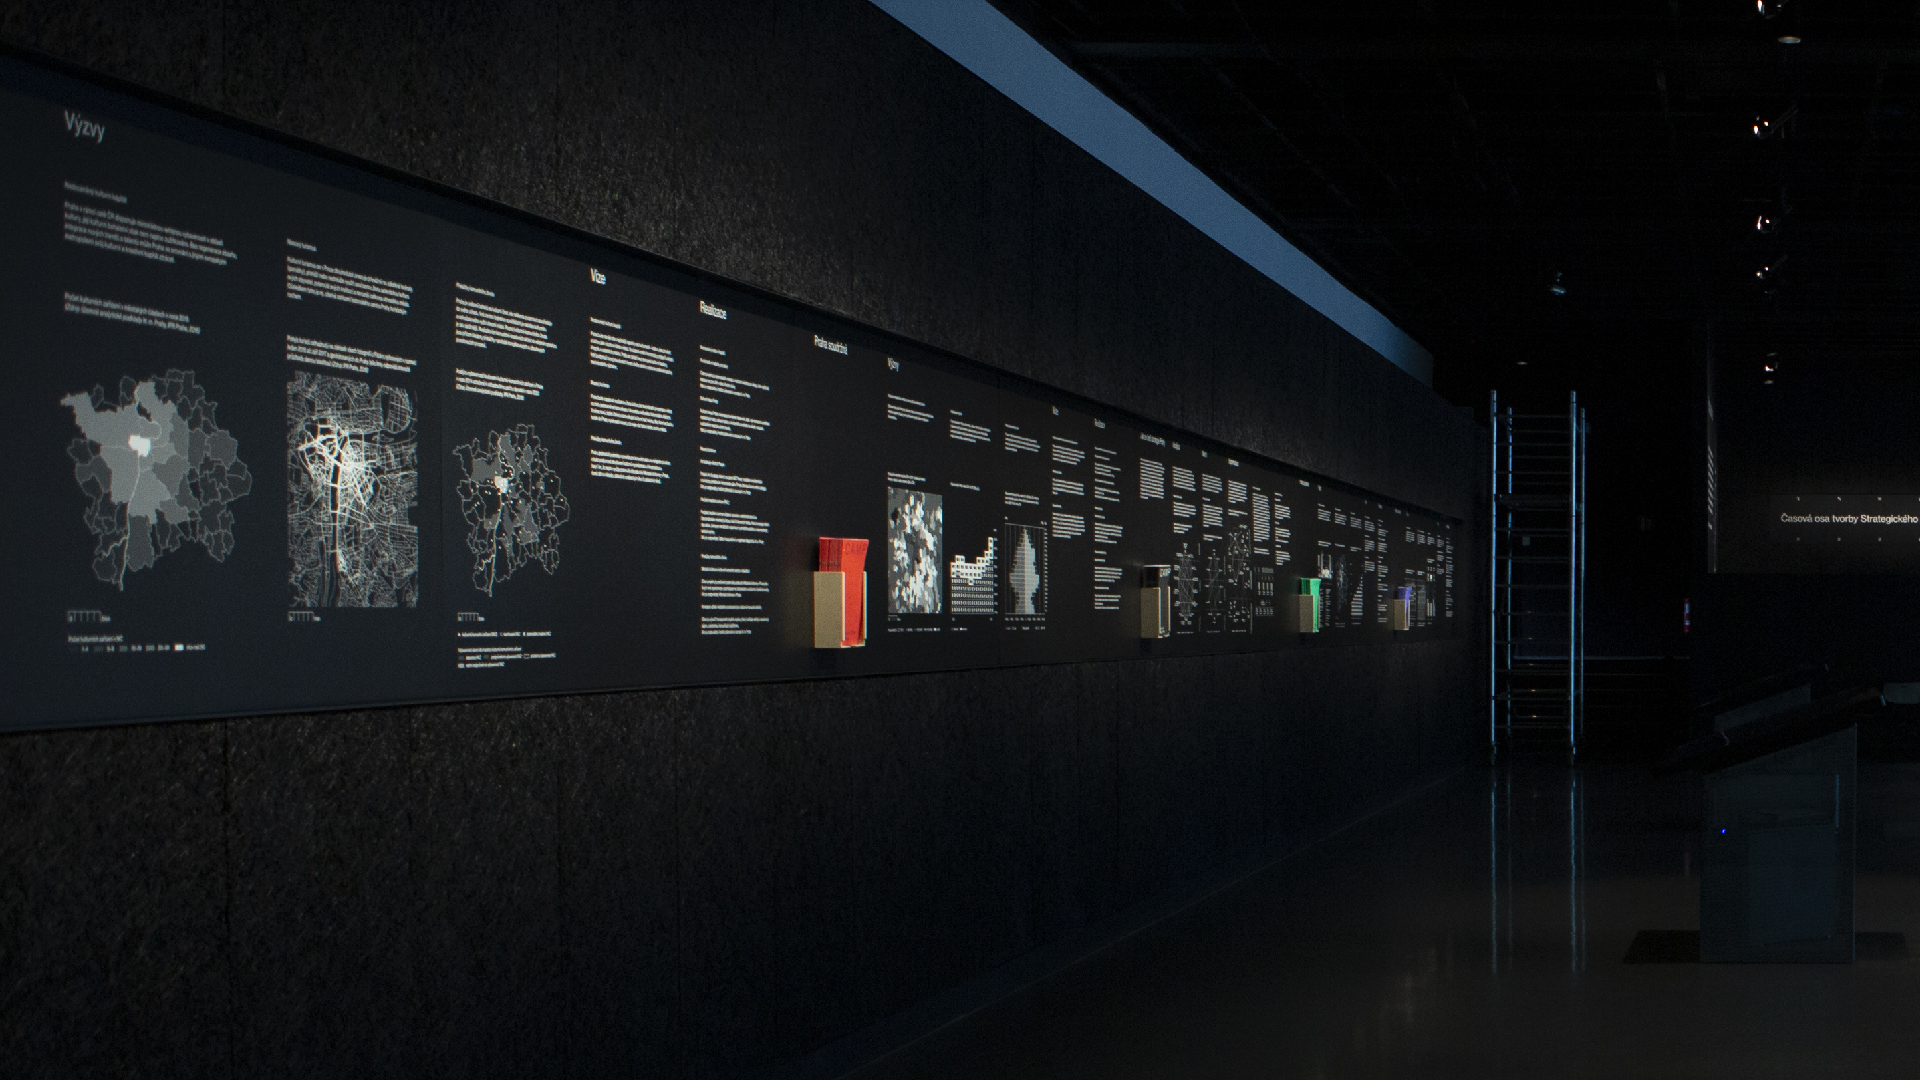 Infographic wall exhibition